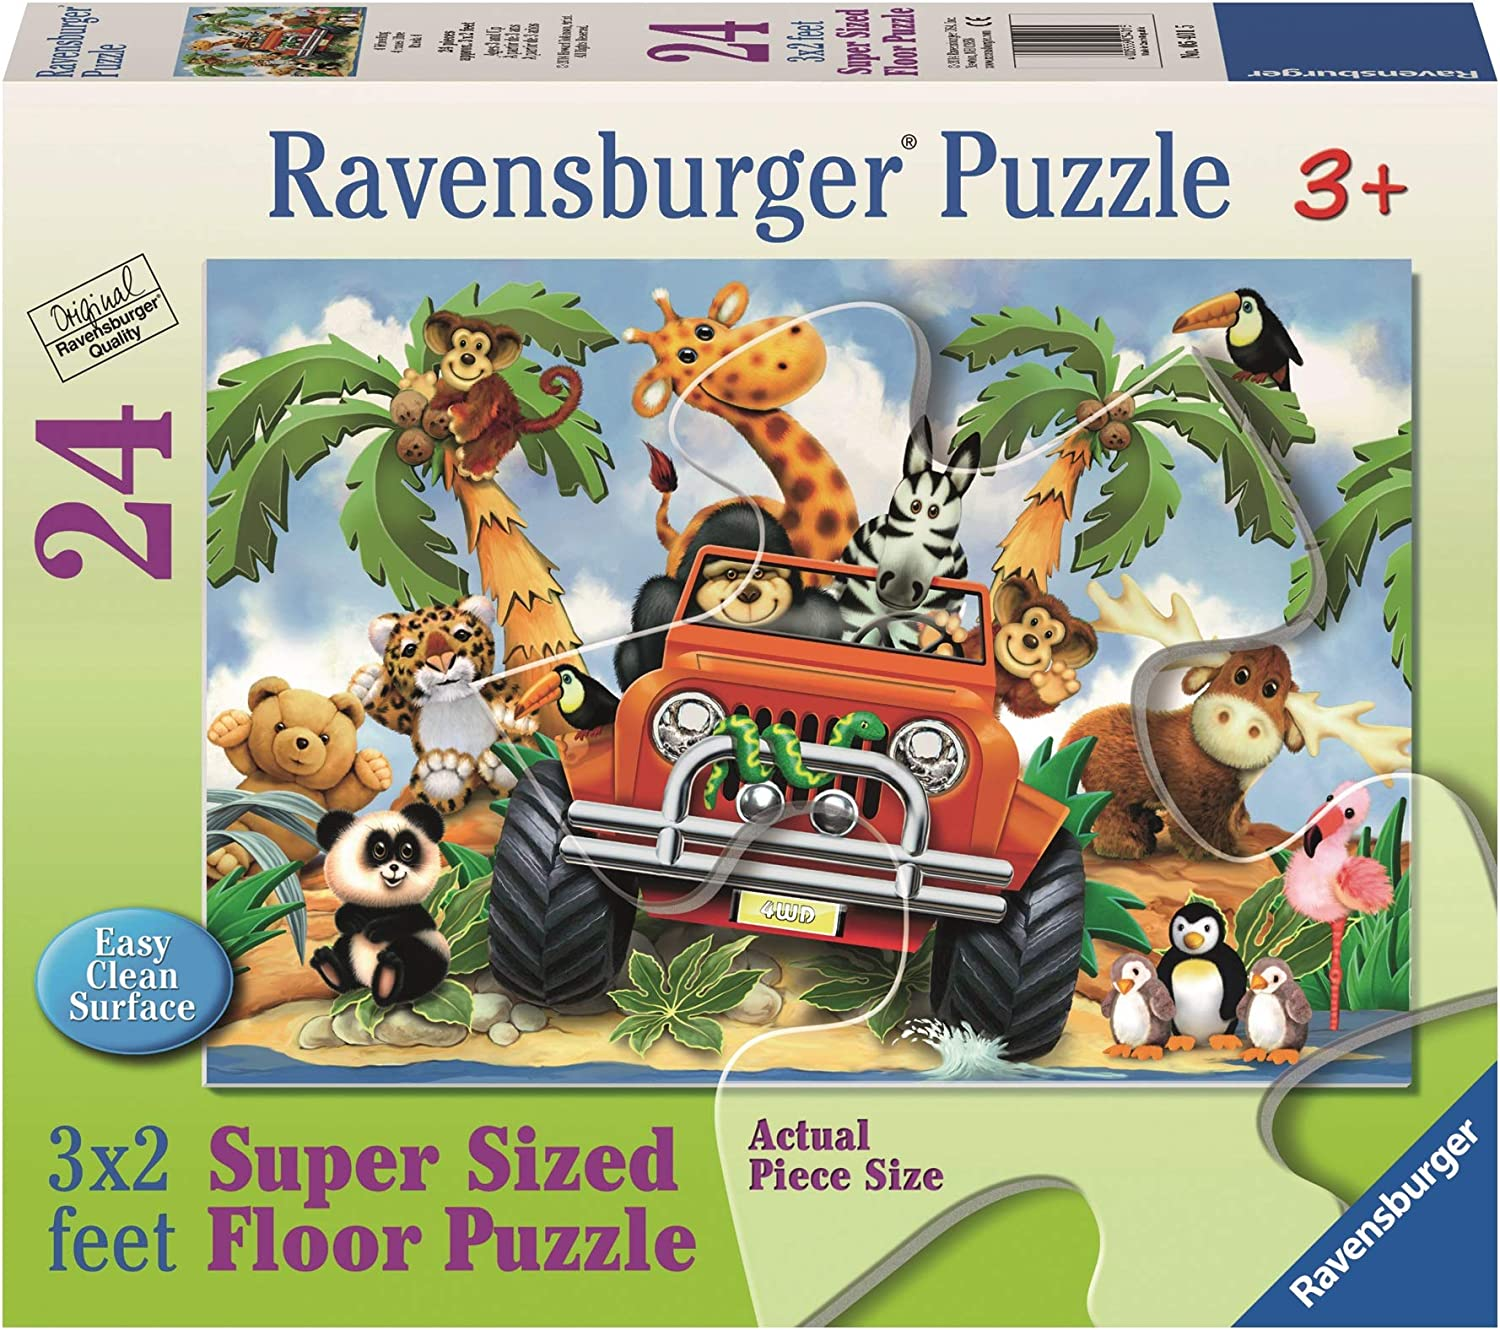 Extra-Thick Cardboard, Easy Clean Surface, 24 Pieces, 3/′ /× 2/′, Great Gift for 3, 4, and 5 Year Old Girls and Boys Ravensburger 03042 Land Ahoy 24 Piece Giant Floor Puzzle for Kids